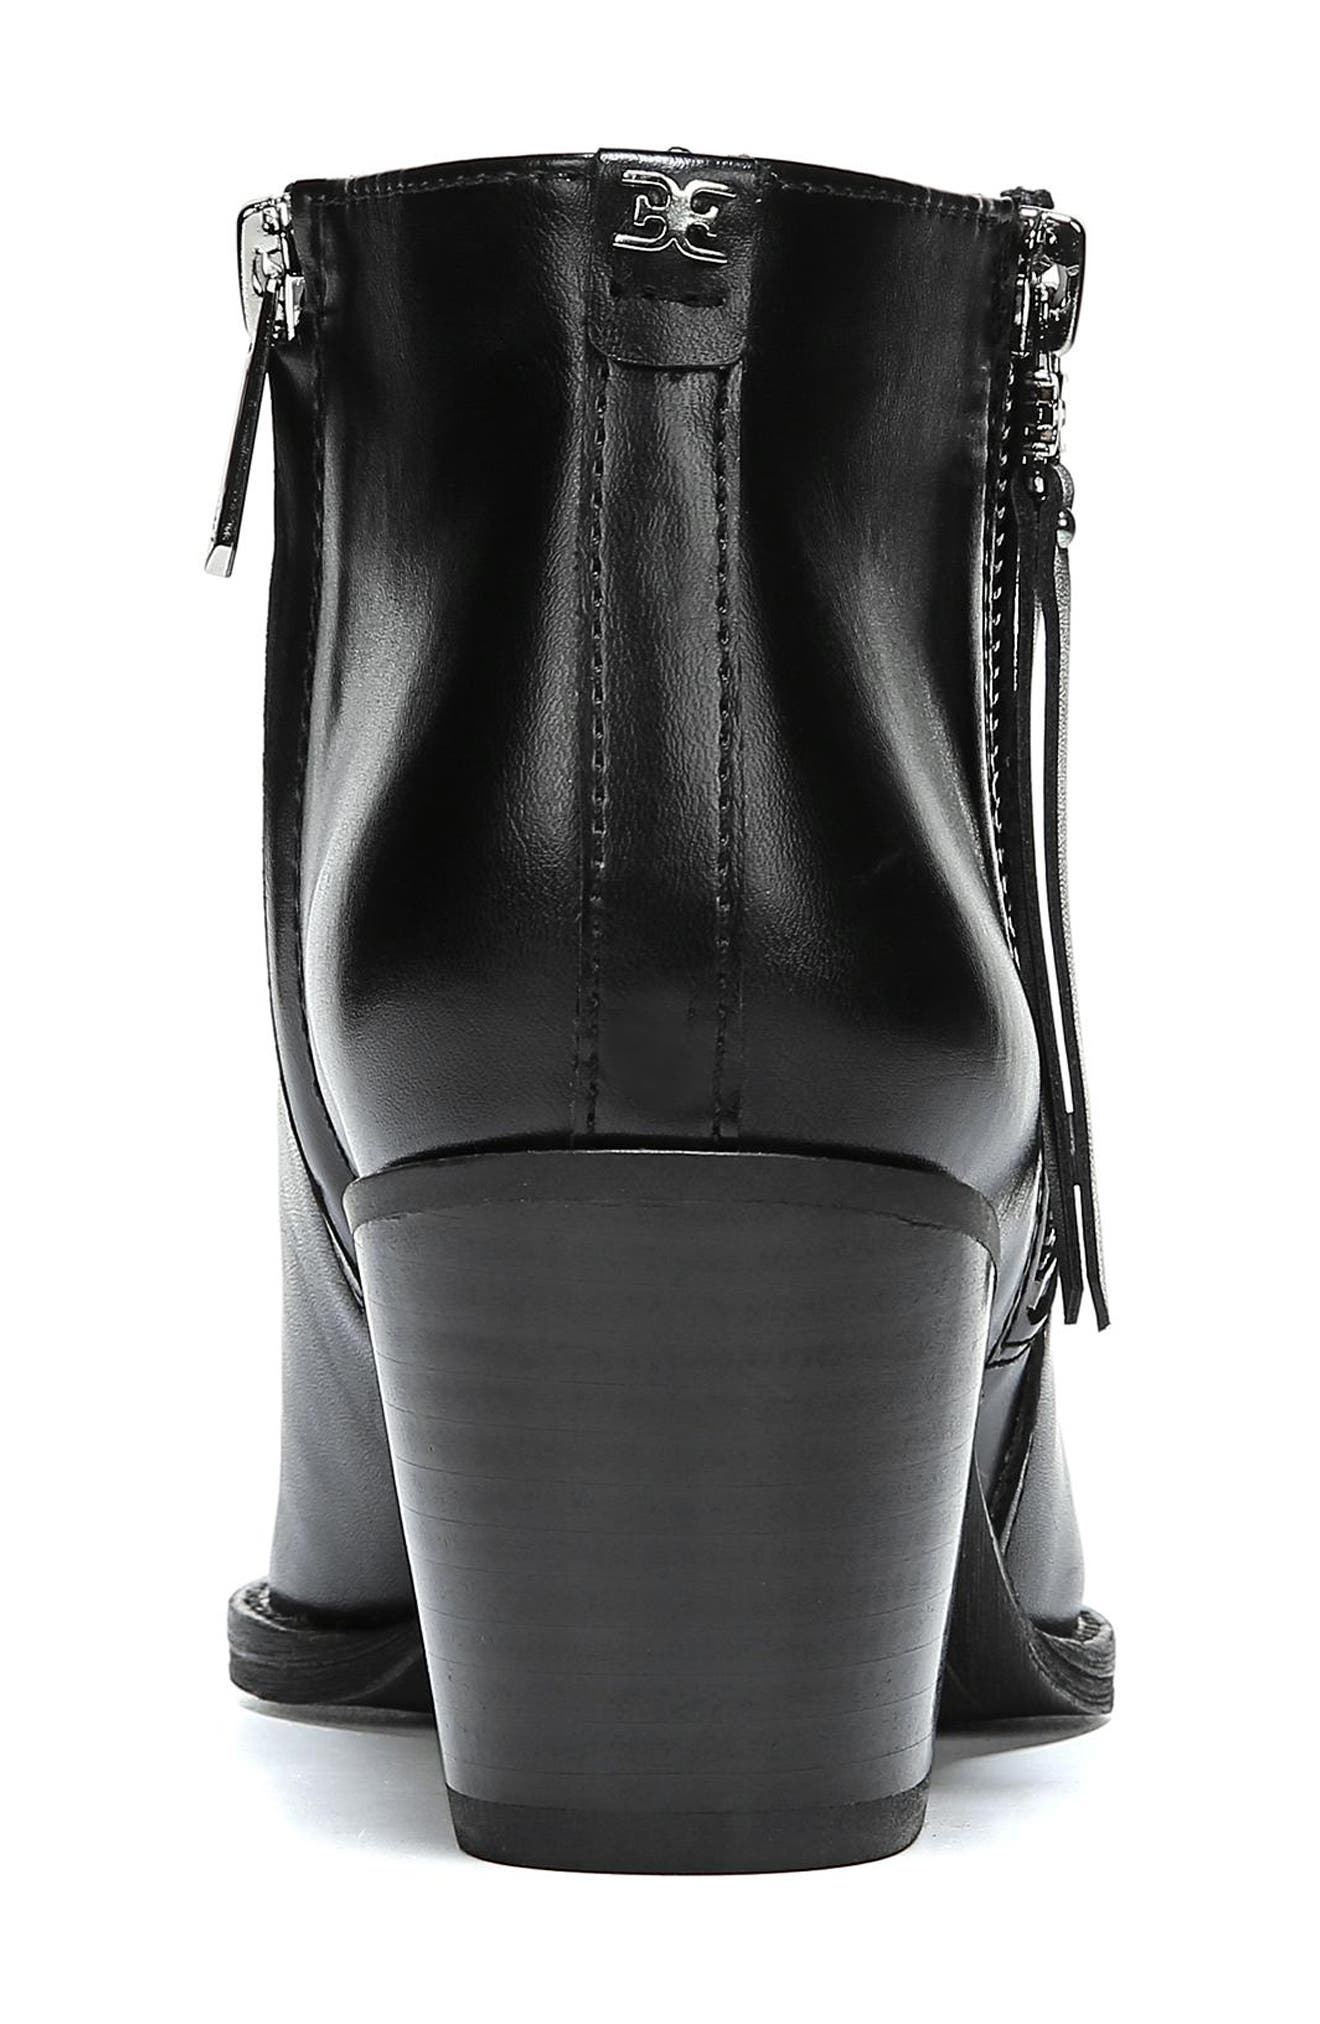 Walden Bootie,                             Alternate thumbnail 8, color,                             BLACK LEATHER